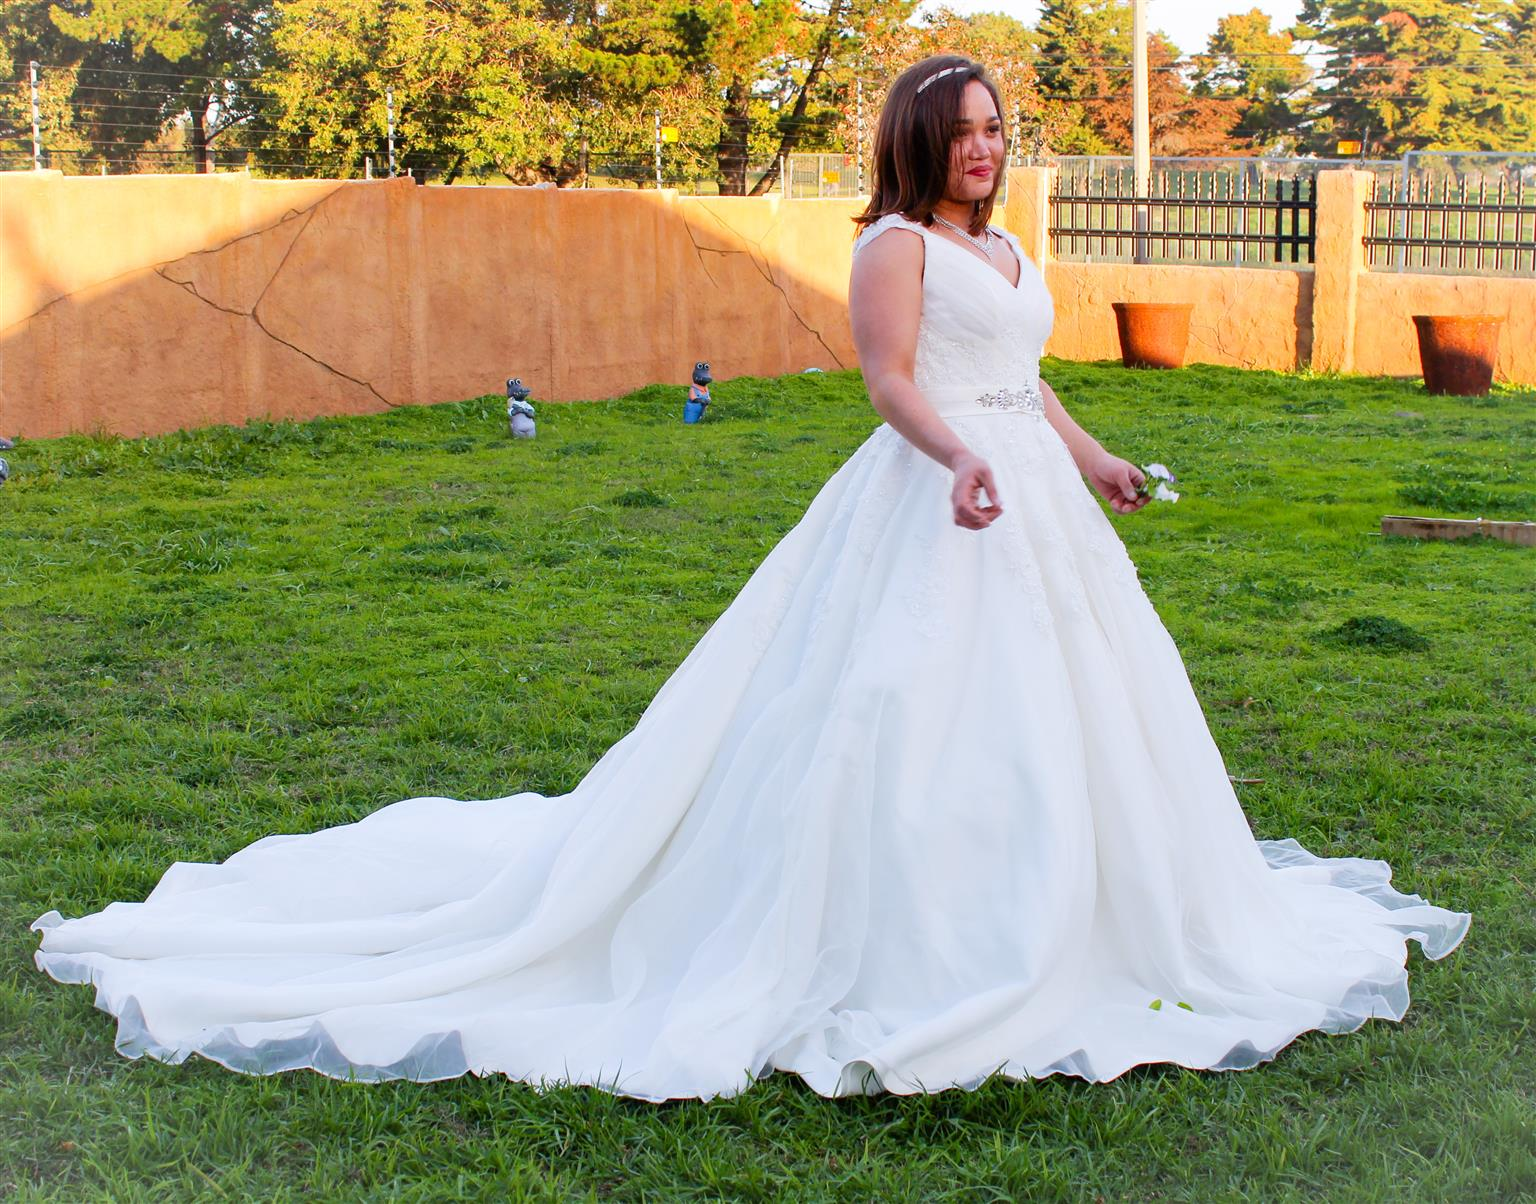 AFFORDABLE WEDDING DRESSES FOR HIRE | Junk Mail